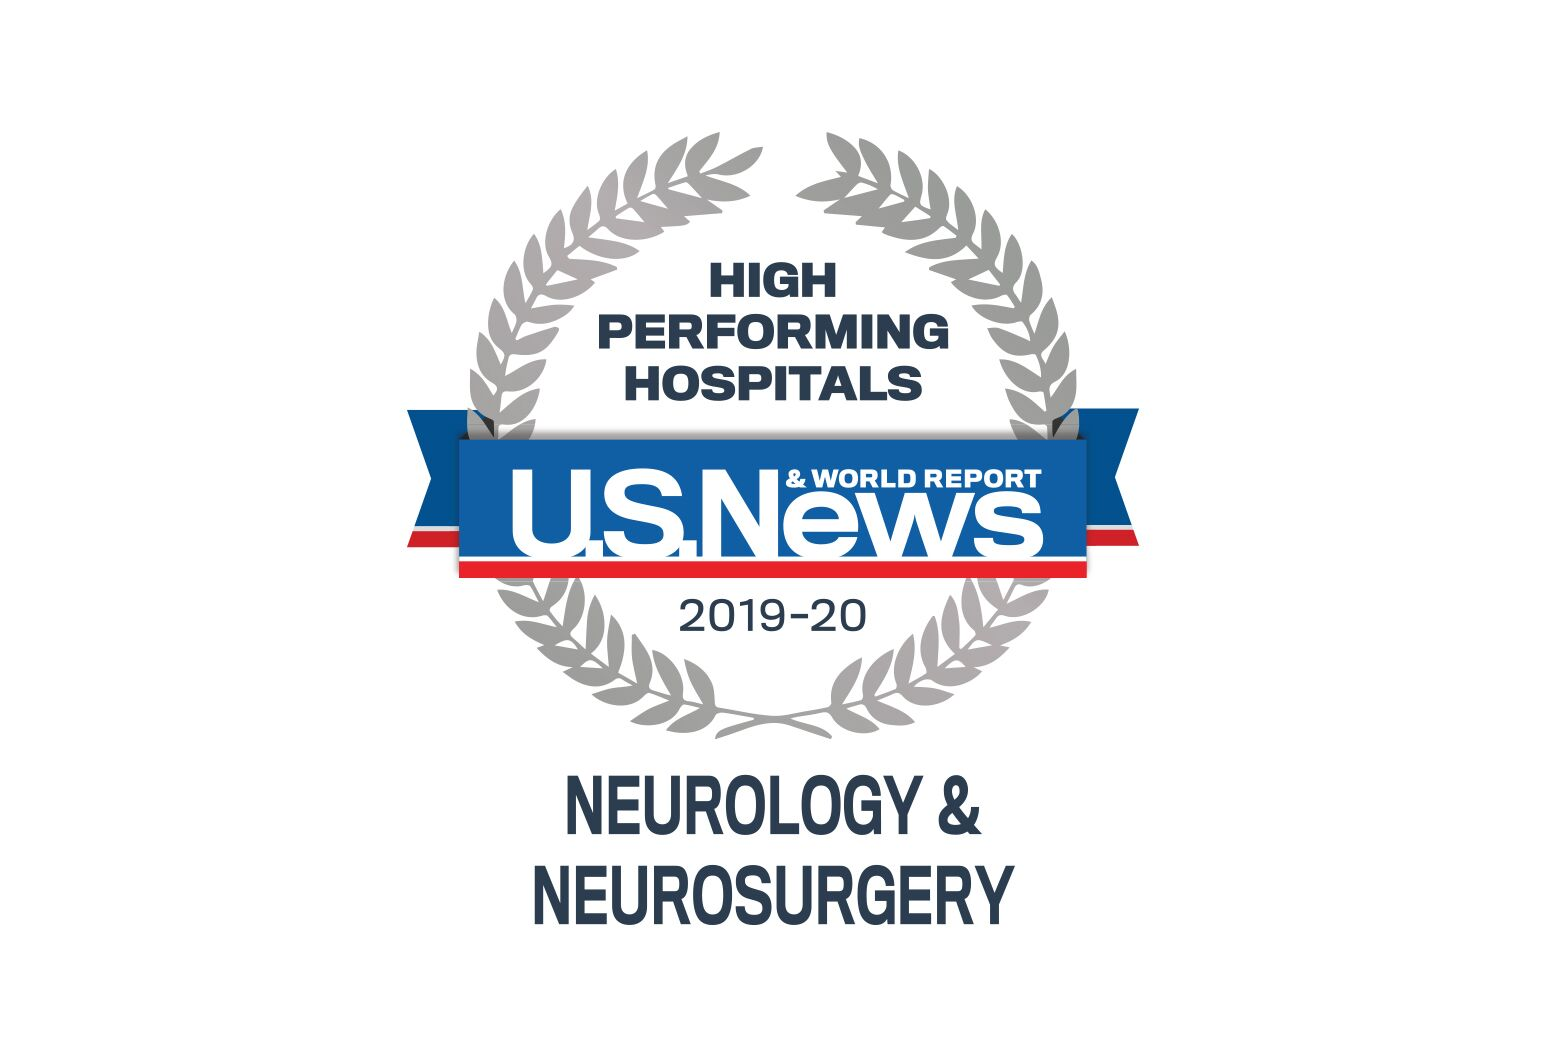 US News Badge for high performing hospitals in neurology and neurosurgery